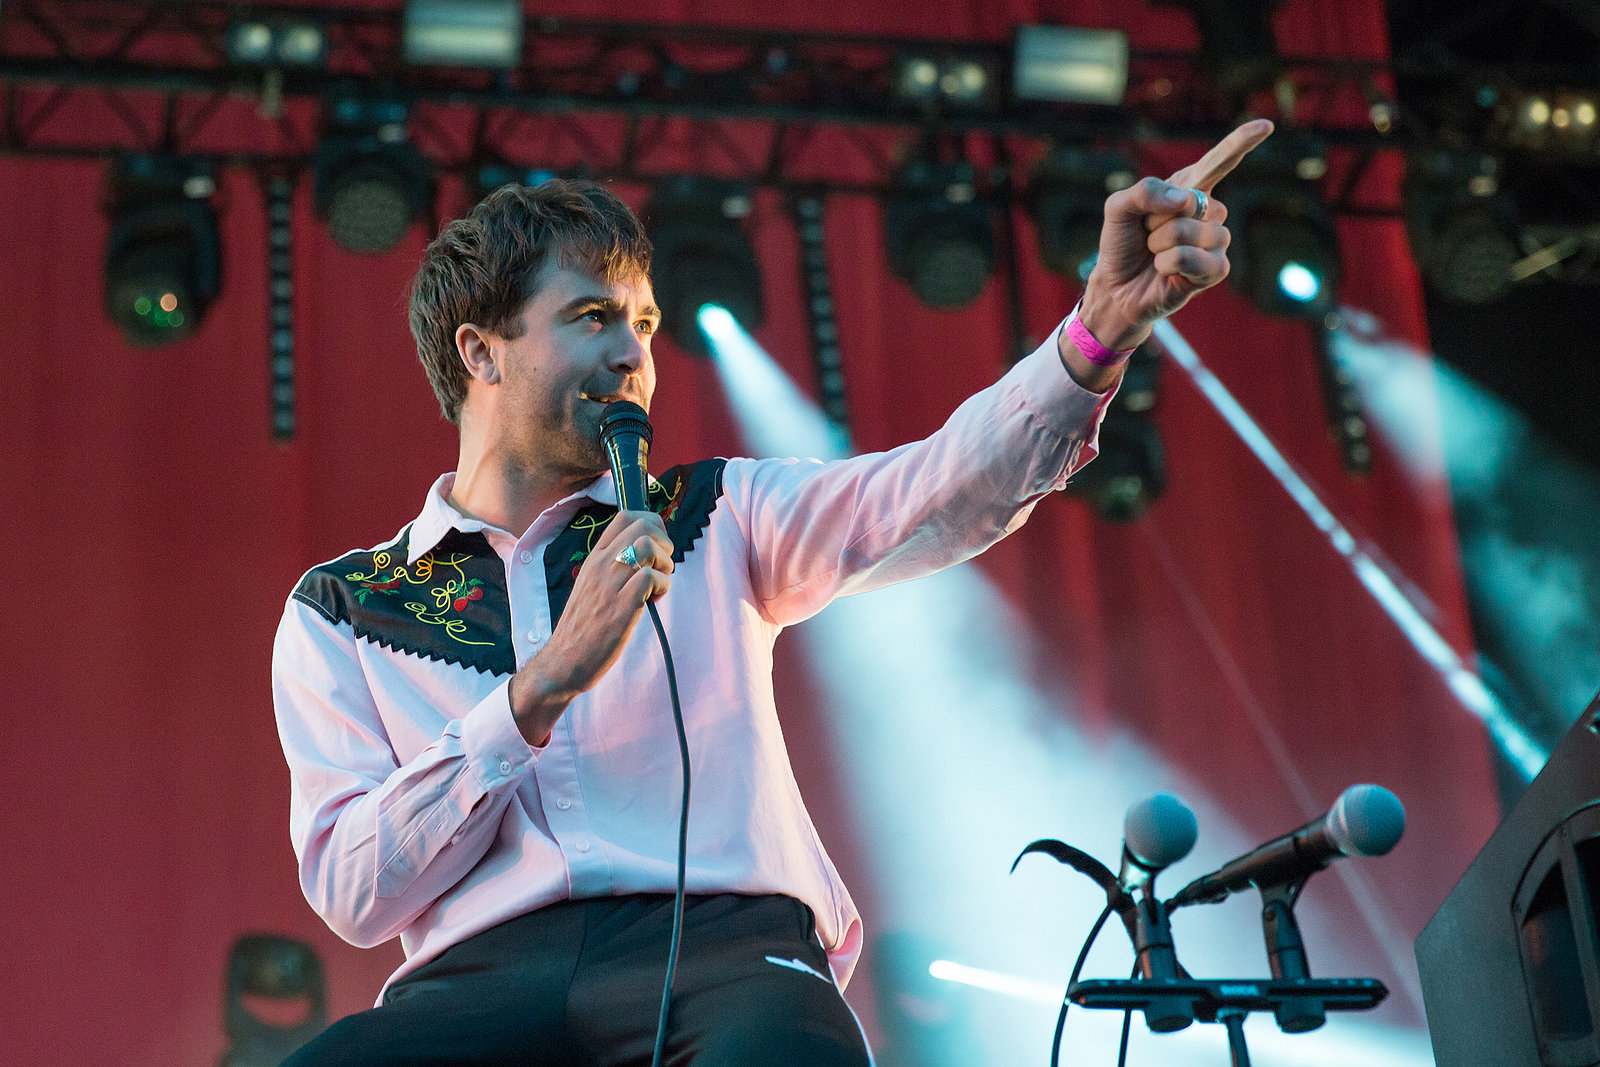 Justin Haywood-Young - The Vaccines - Truck Festival